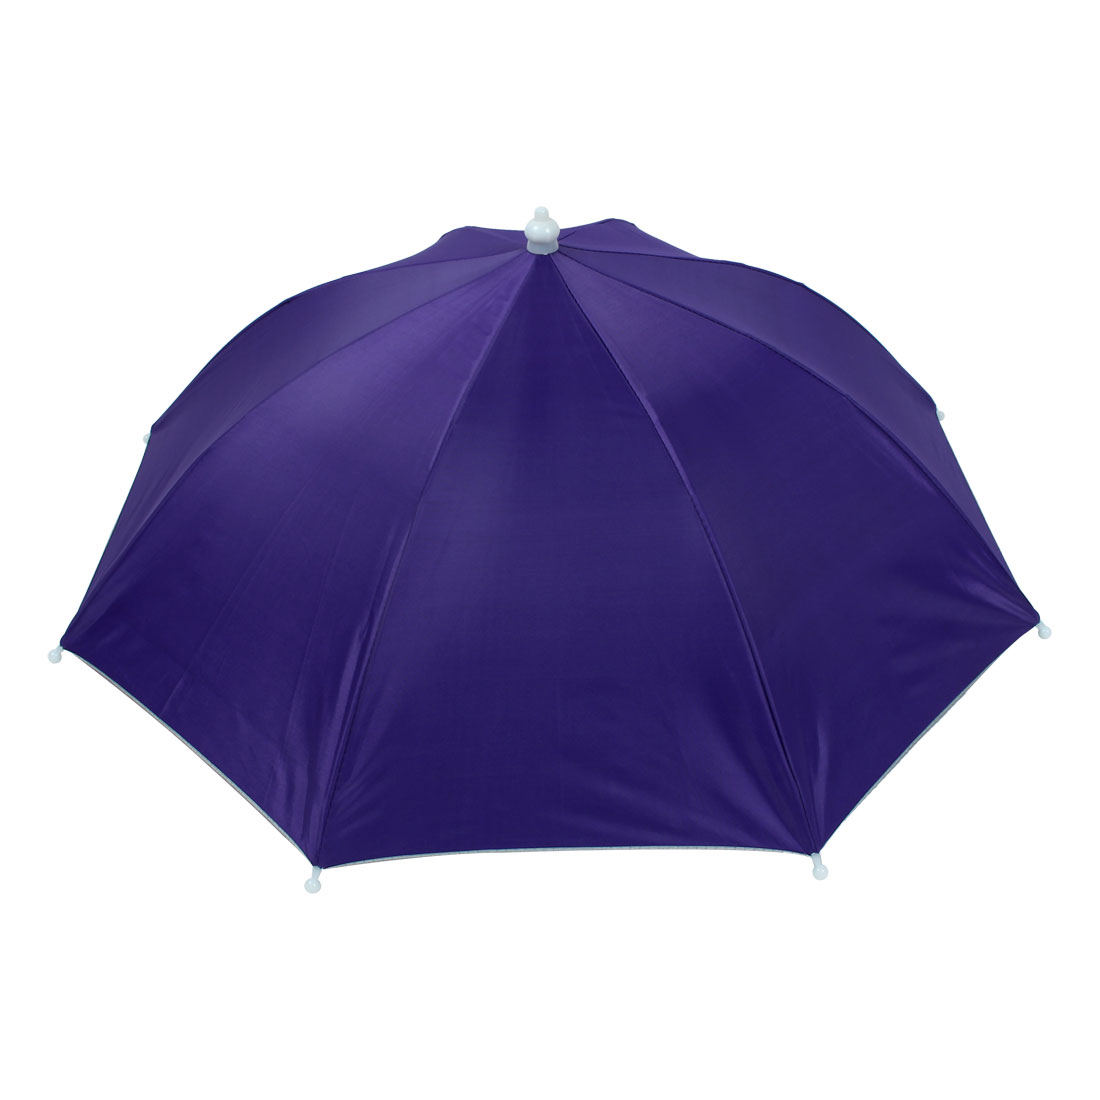 Fishermen Stretchy Headband Handsfree Folding Fishing Umbrella Hat Dark Purple